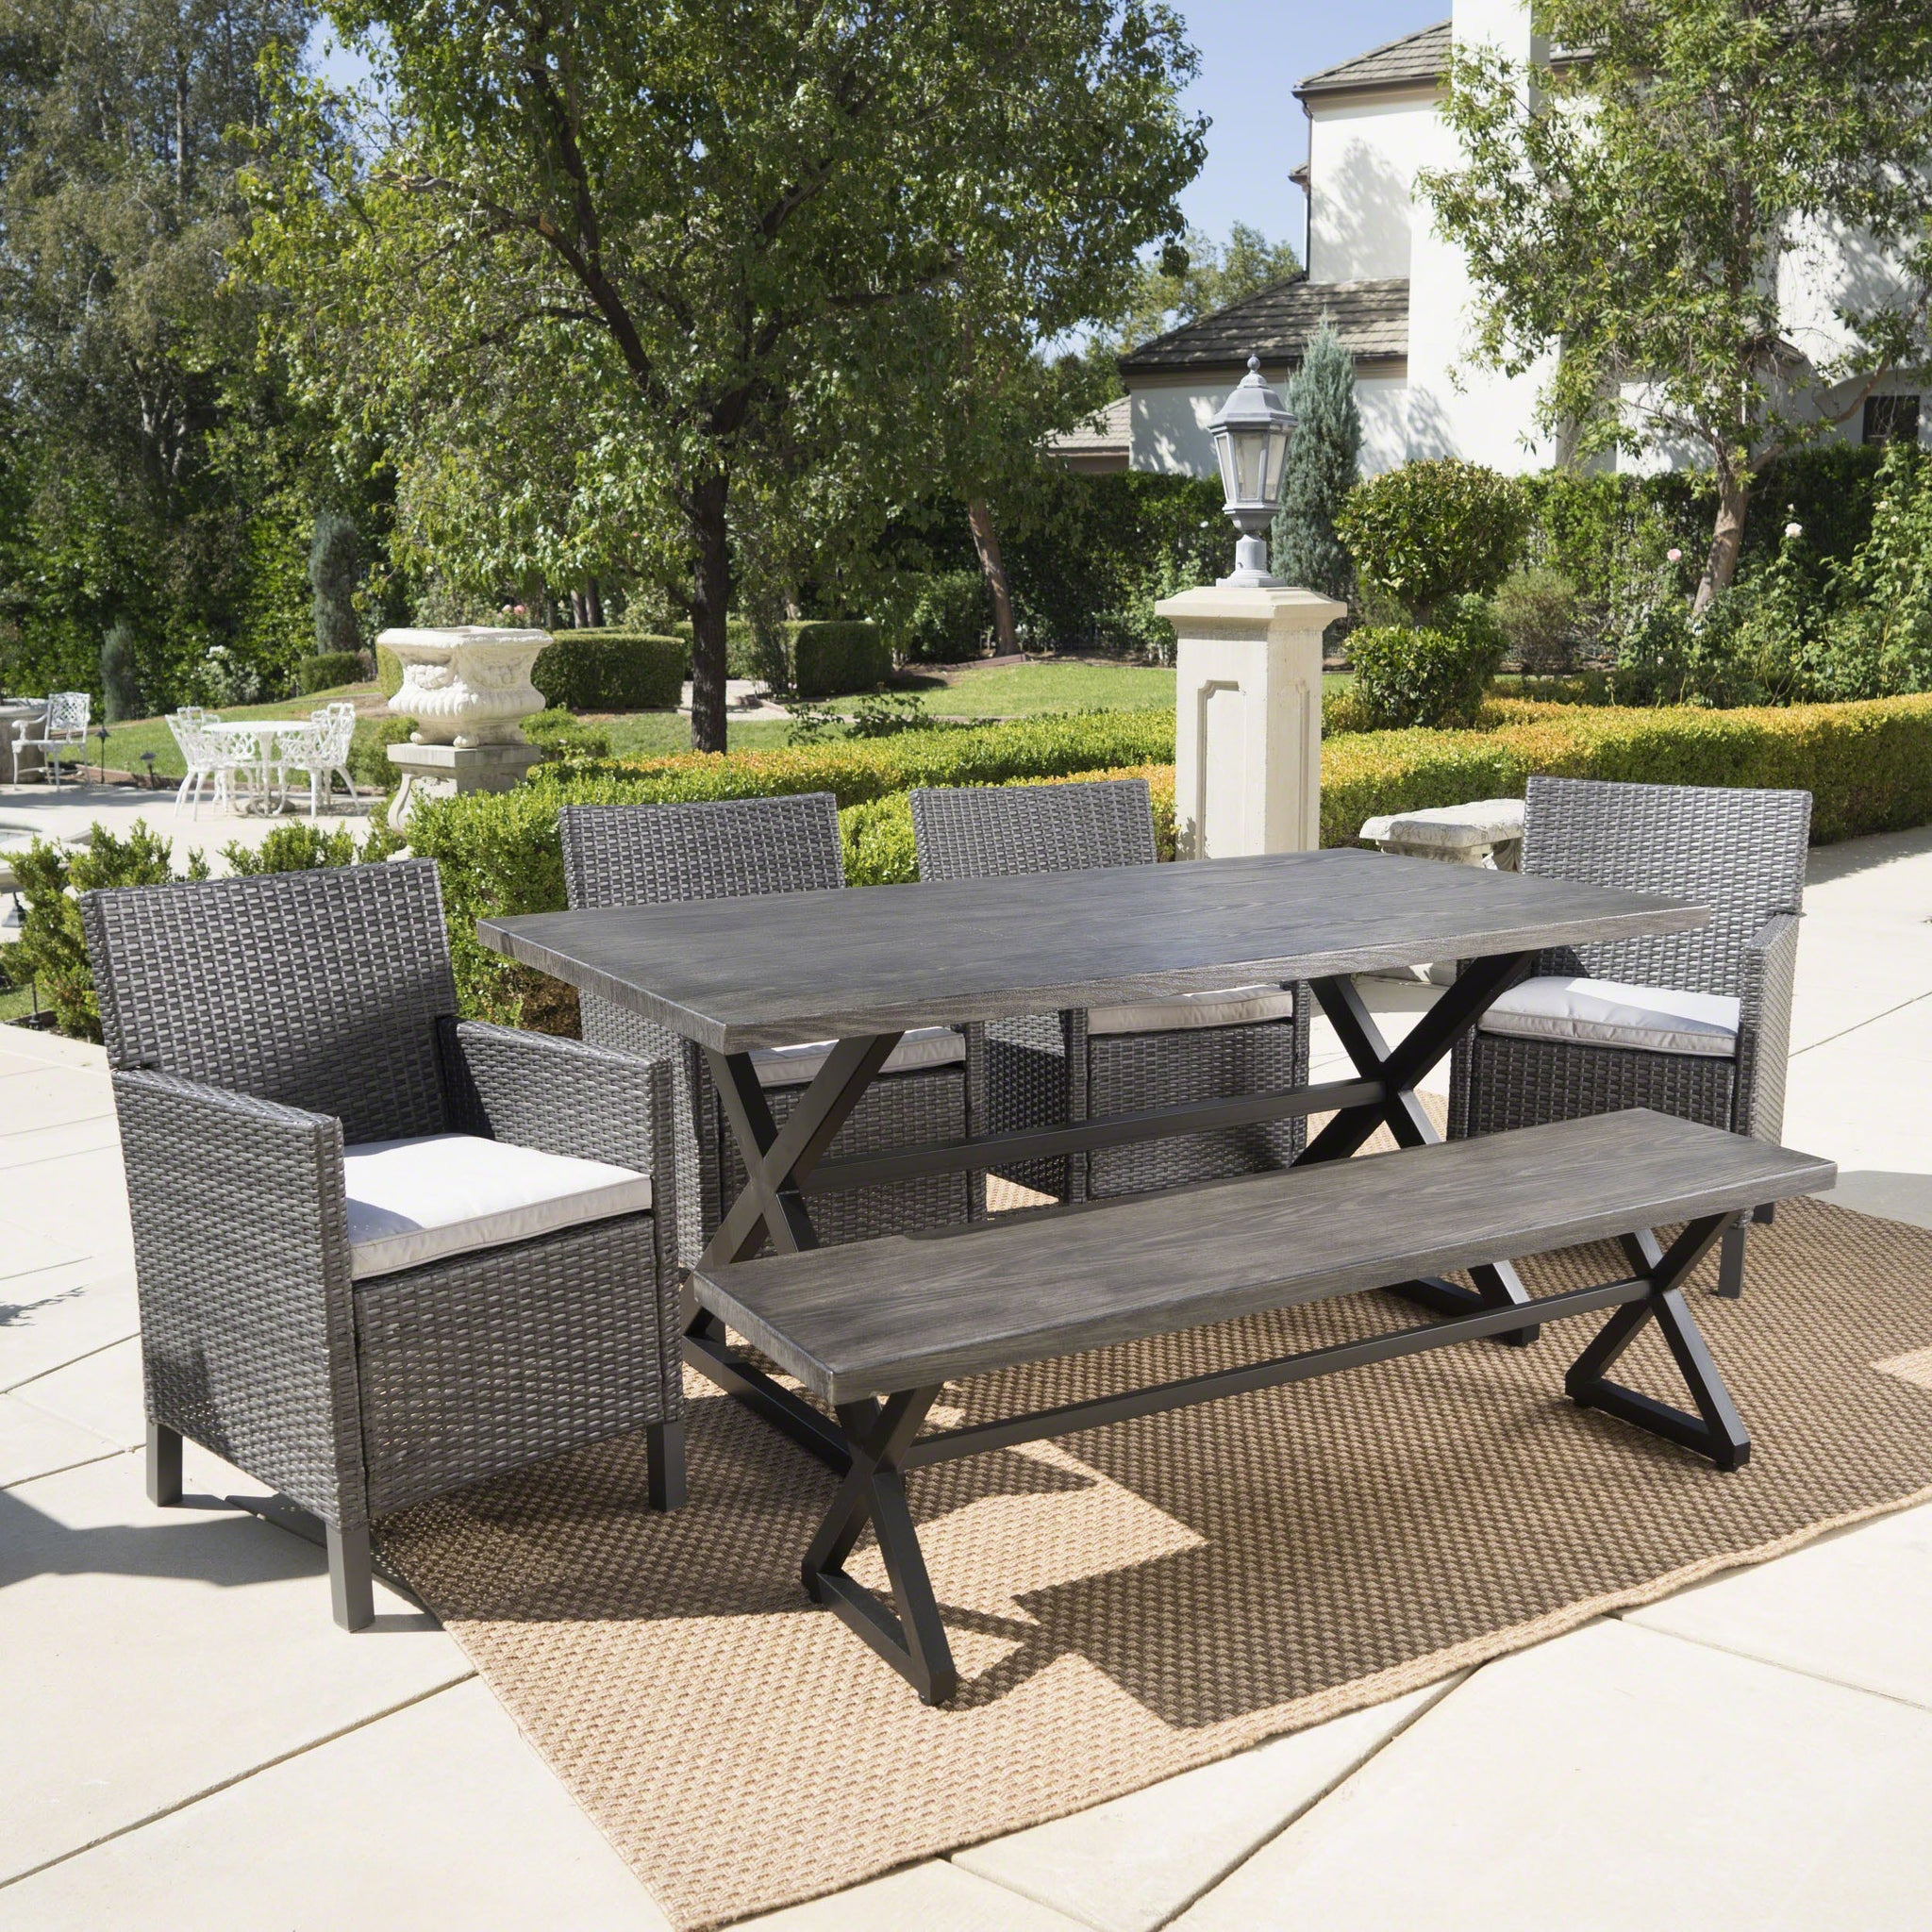 Agostini Outdoor 6 Piece Wicker Rectangular Dining Set With Aluminum Dining Table And Water Resistant Cushions